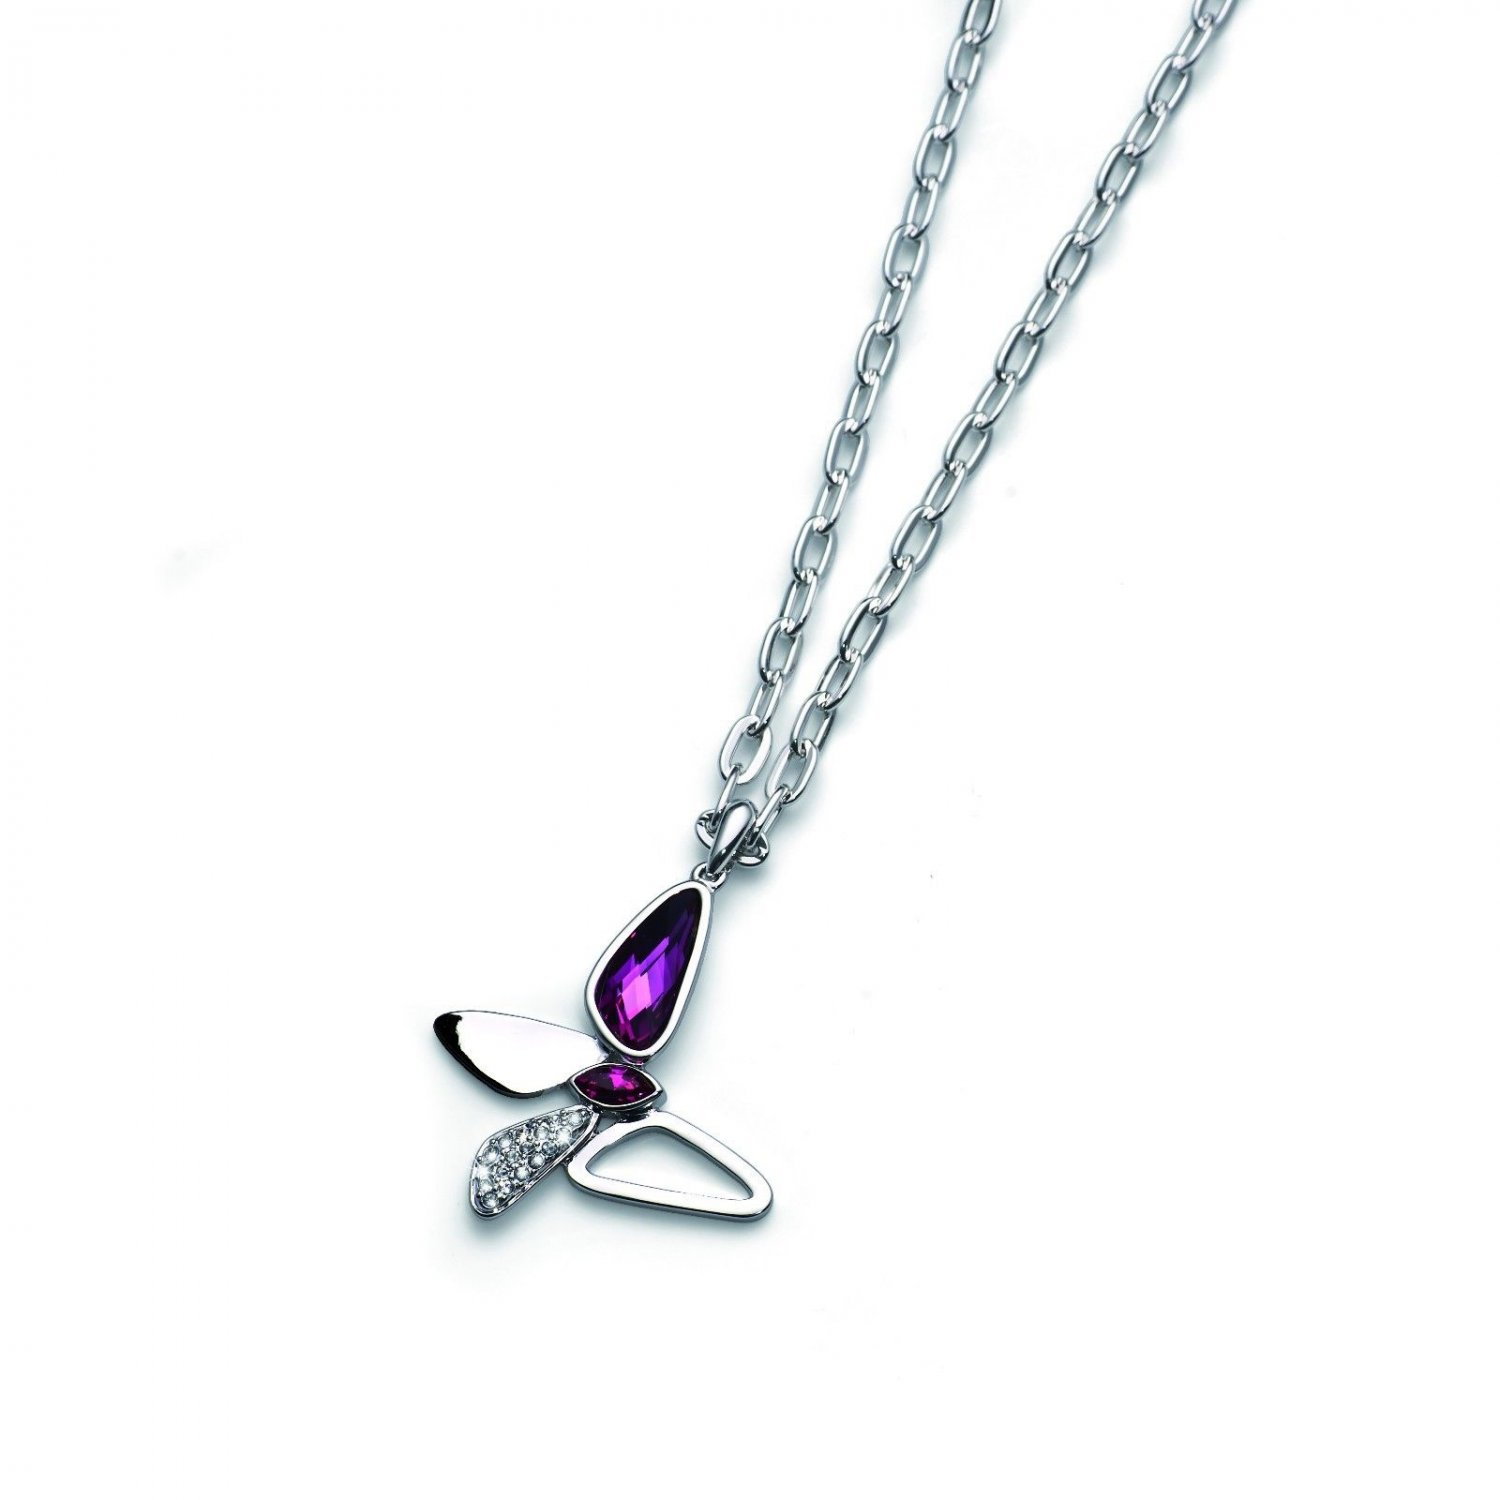 Silver Chain Necklace Swarovski Elements Fuchsia Butterfly Oliver Weber